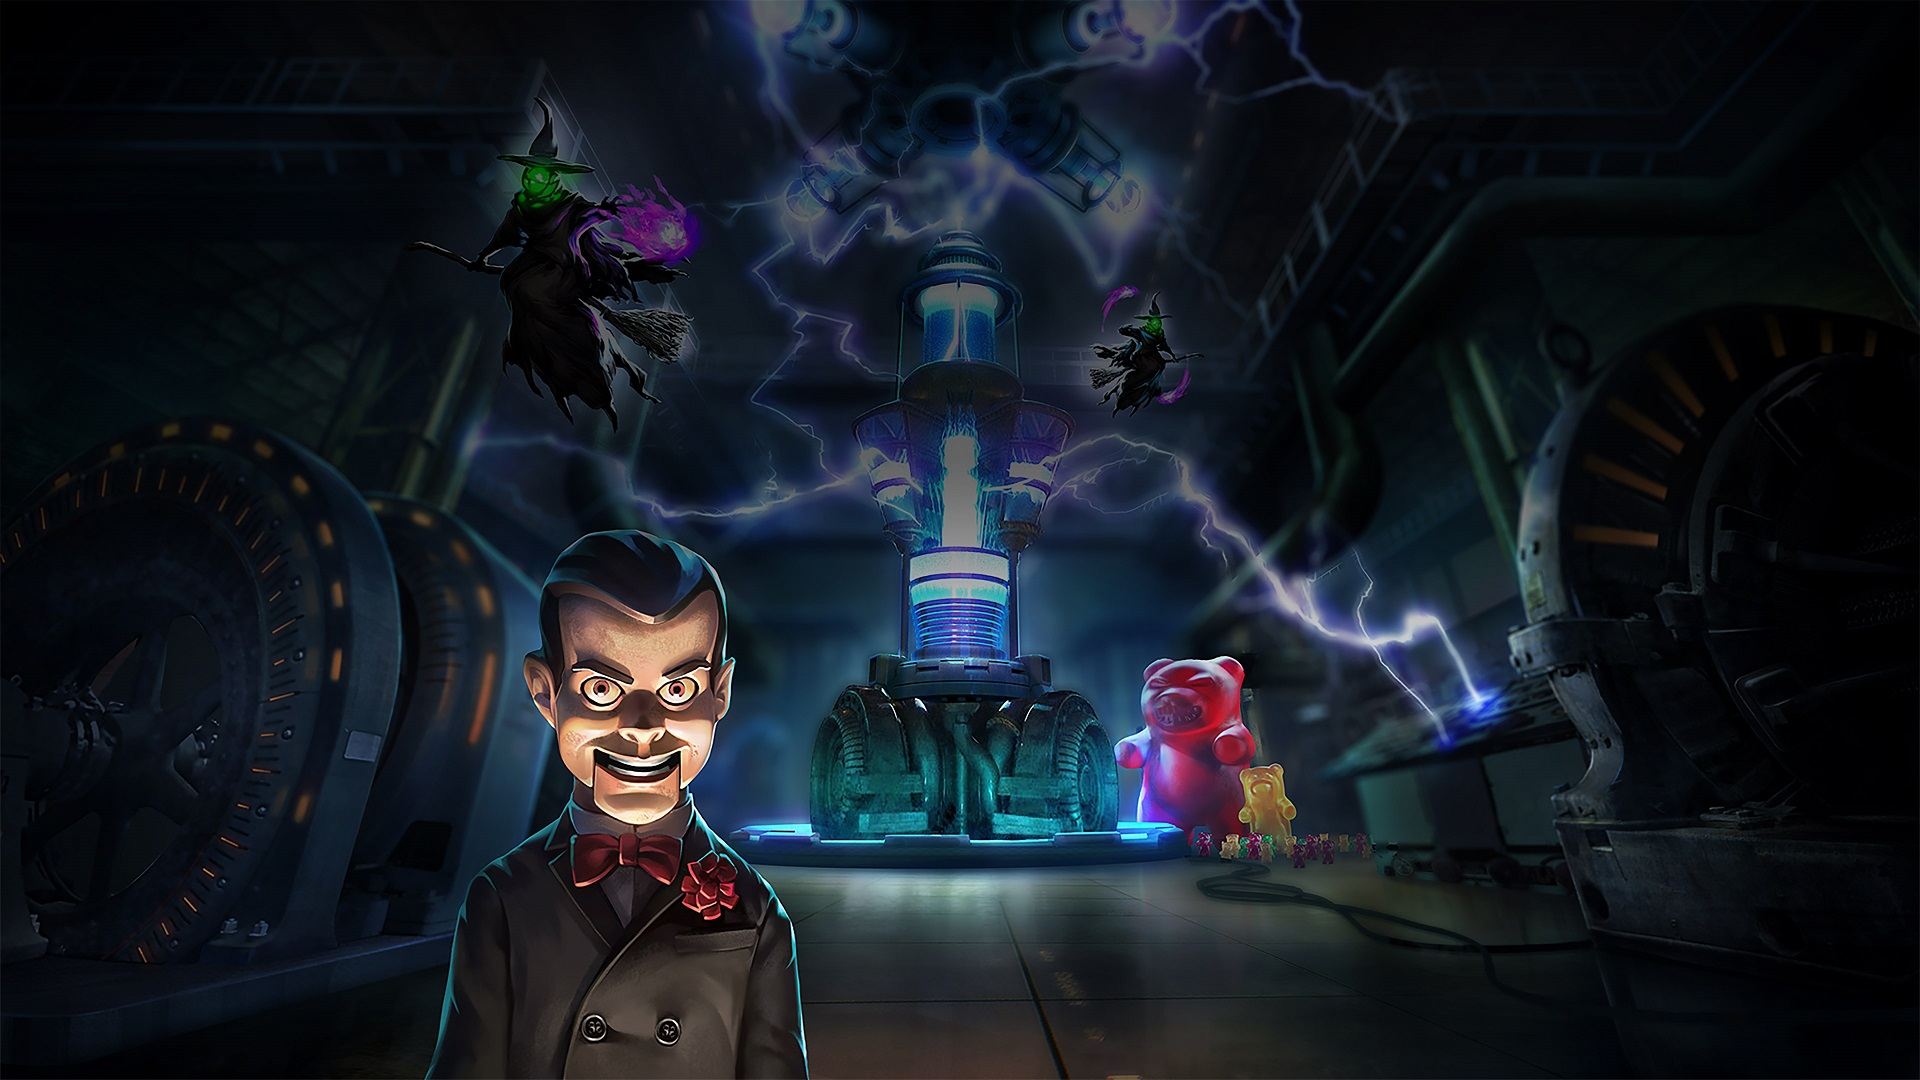 A new Goosebumps game is coming this summer screenshot